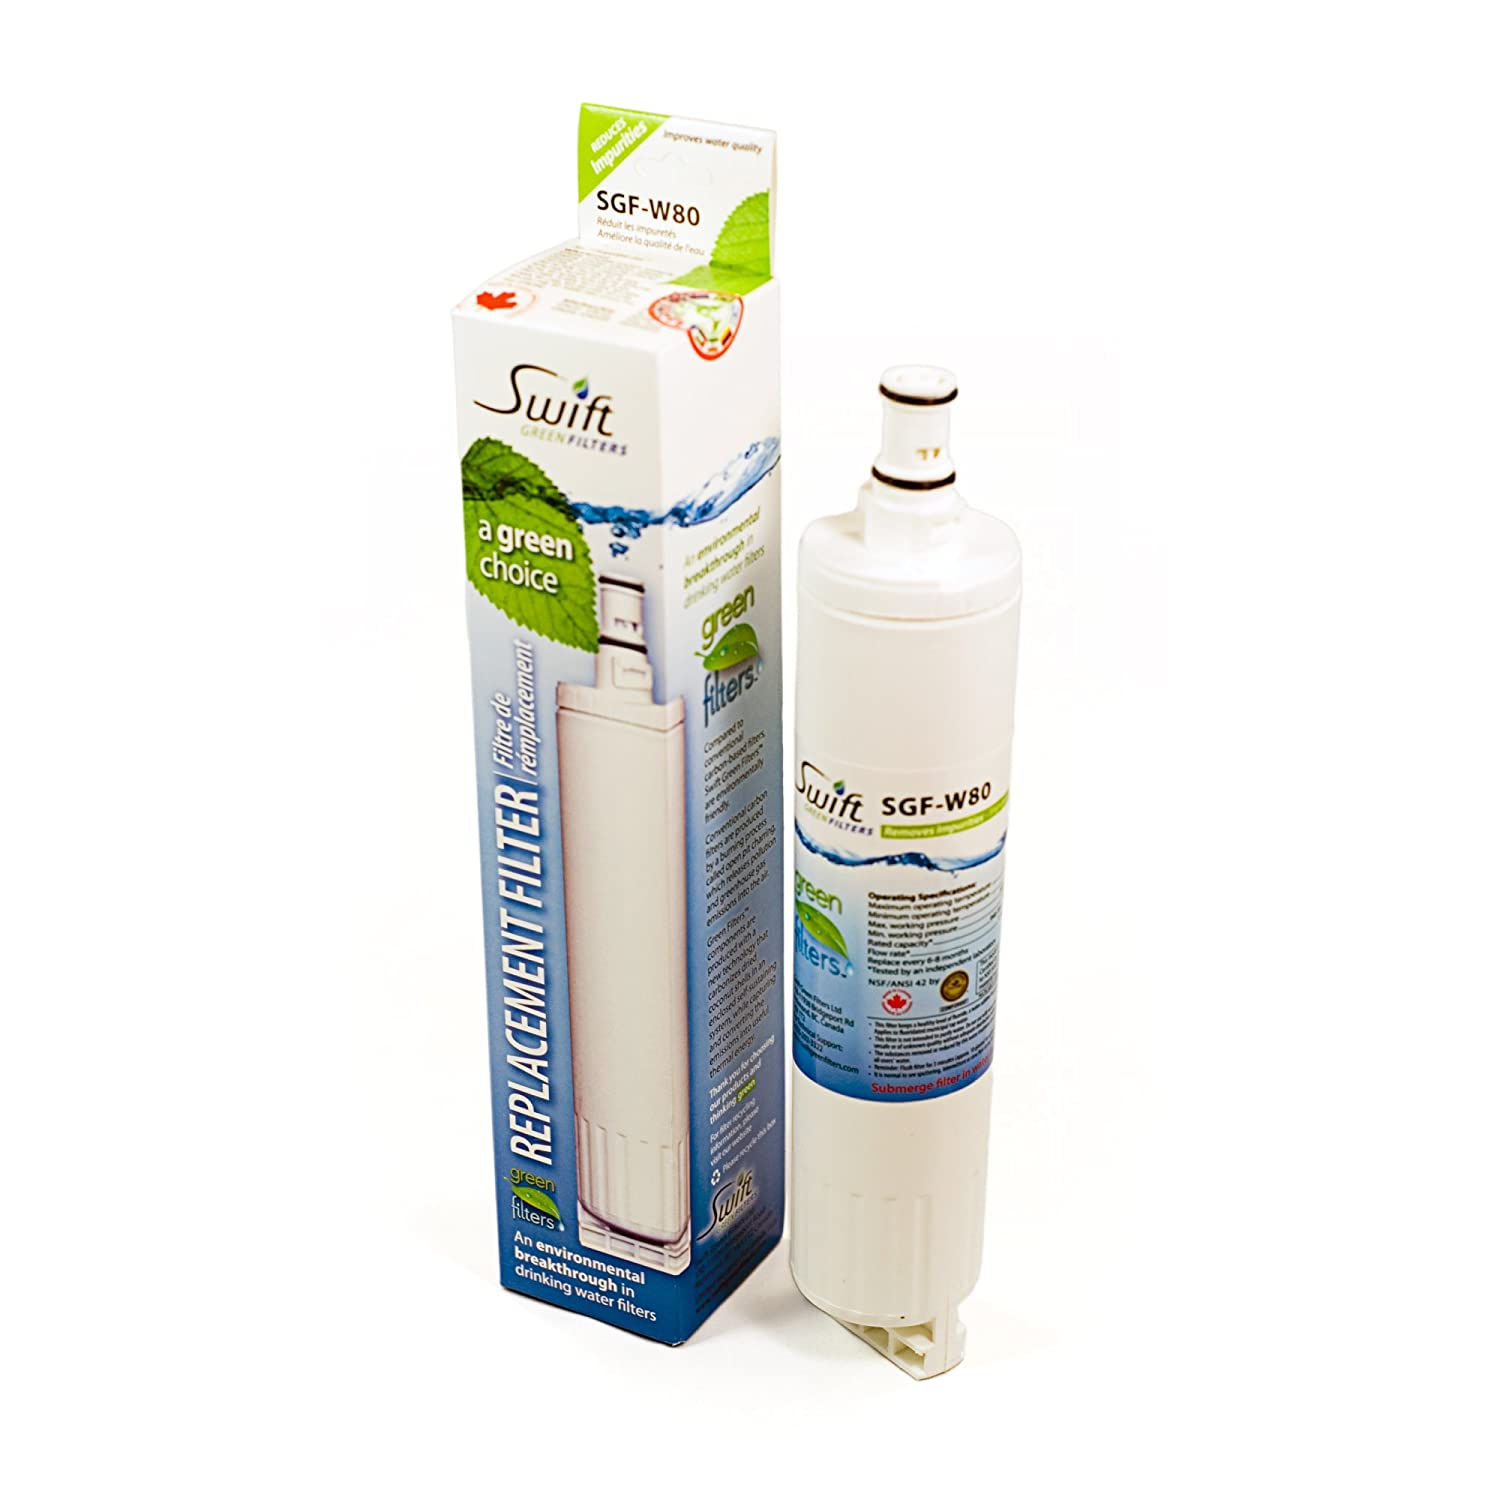 Whirlpool replacement water filter 4396508 and Canada W80 2 Pack and made in U.S.A 4396710; 439671P; WFNL300; L400; pur; wfl500; nl240; 9908; WFNL300 NL240 WFL500 WFL400V WF-300BR Pack of 2 Swift Green Filters SGF-W80 PUR 4396547 100/% recyclable